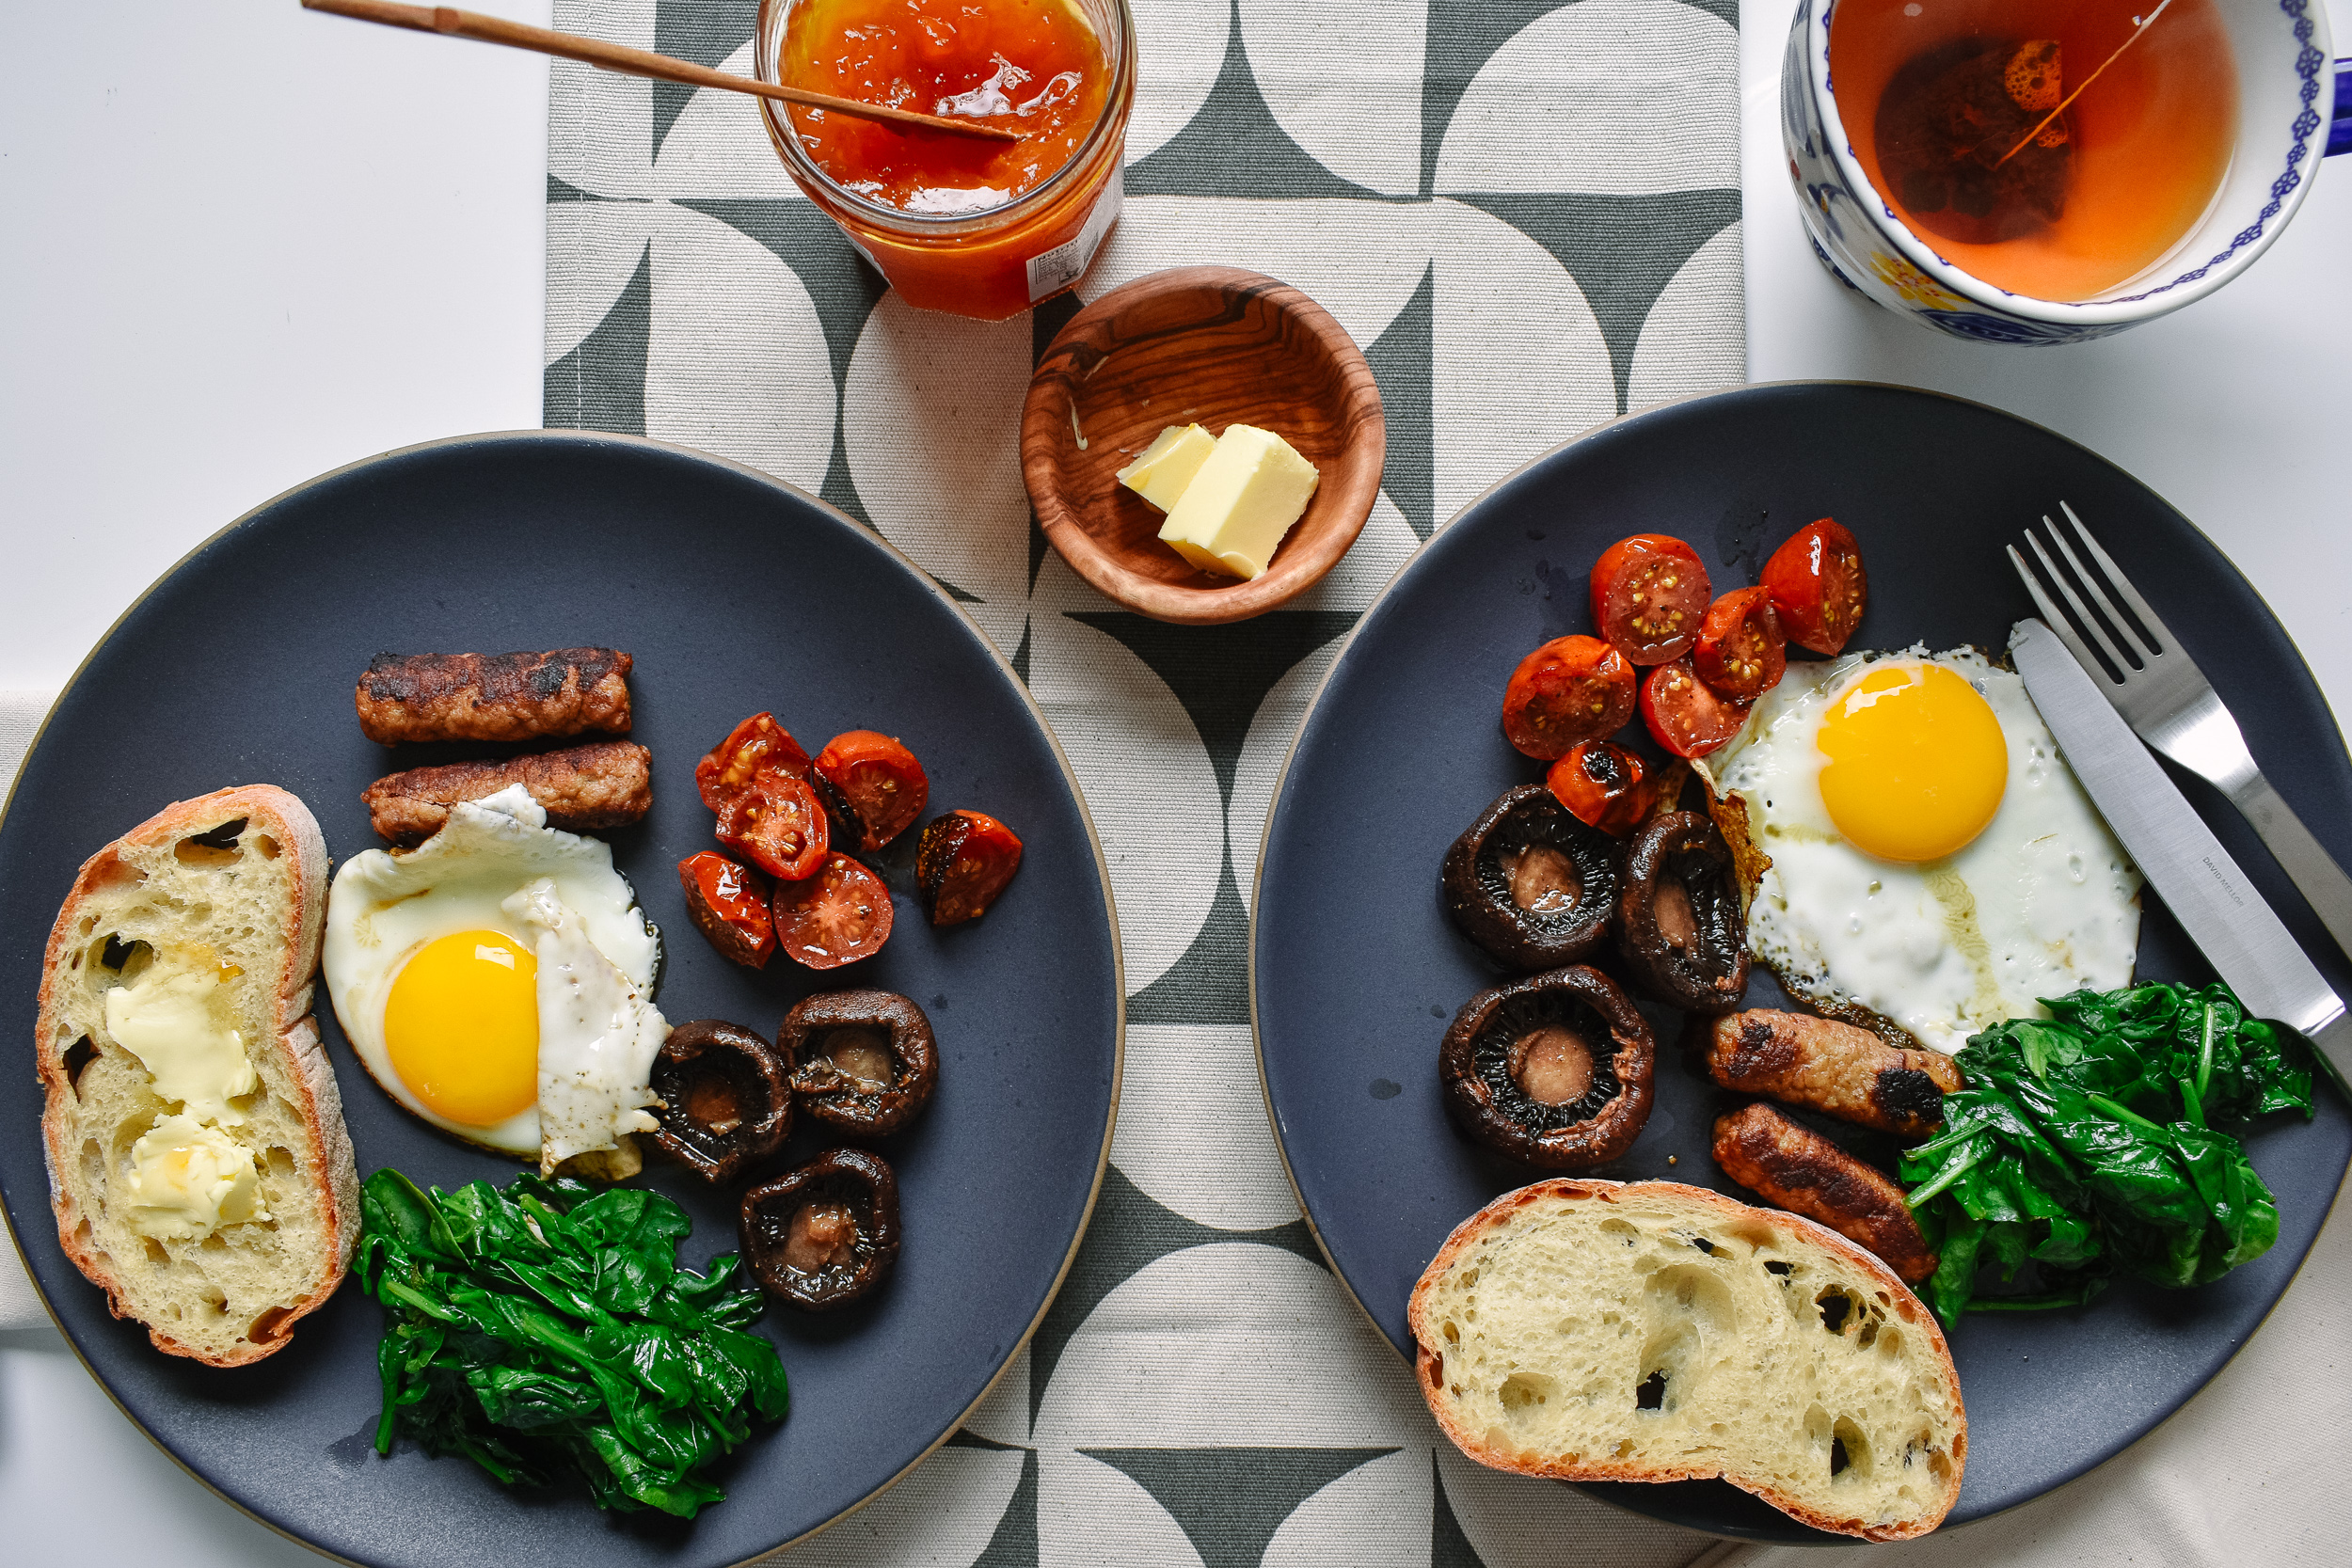 Start the toast, plate the fried eggs, then sauté the spinach